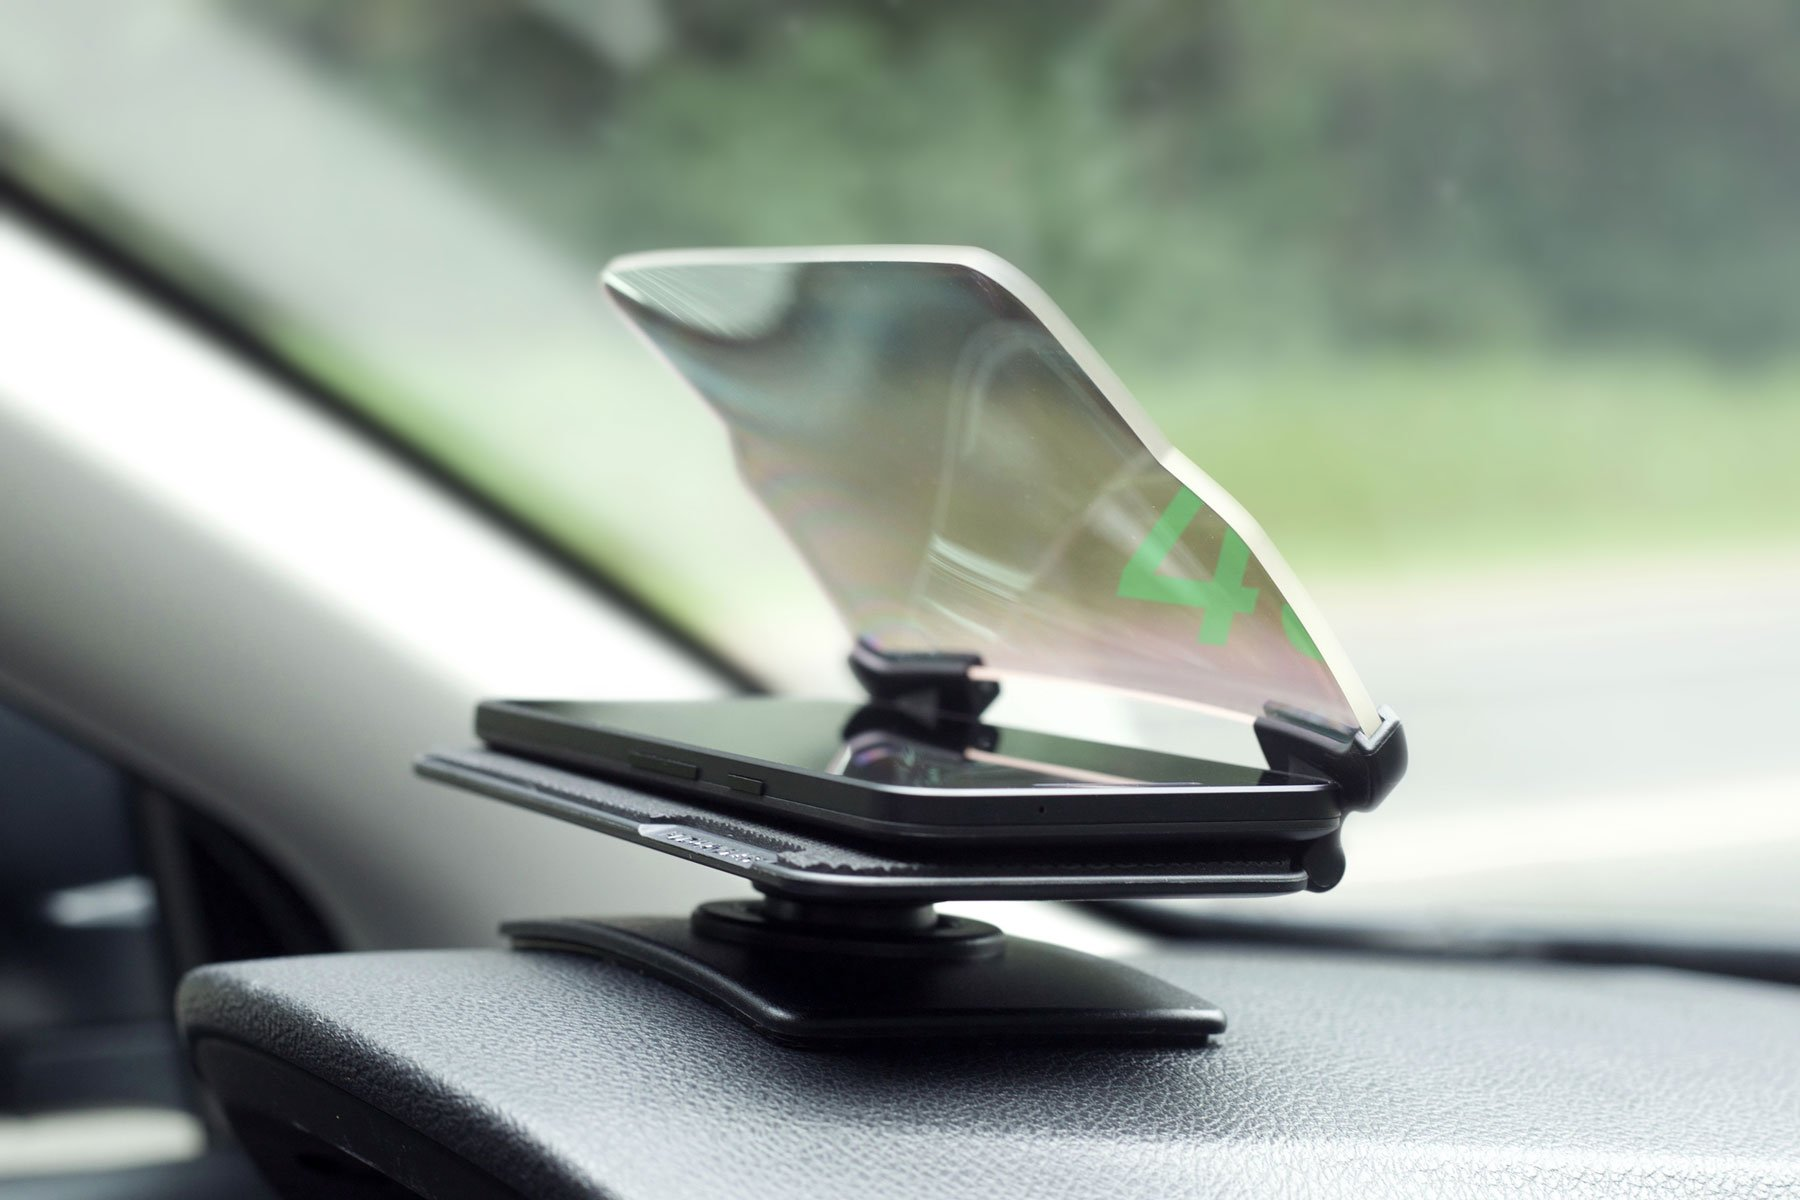 HUDWAY Glass - Universal Head-Up Display (HUD) for GPS Navigation for Any Car. Smartphone Apps Included. by HUDWAY